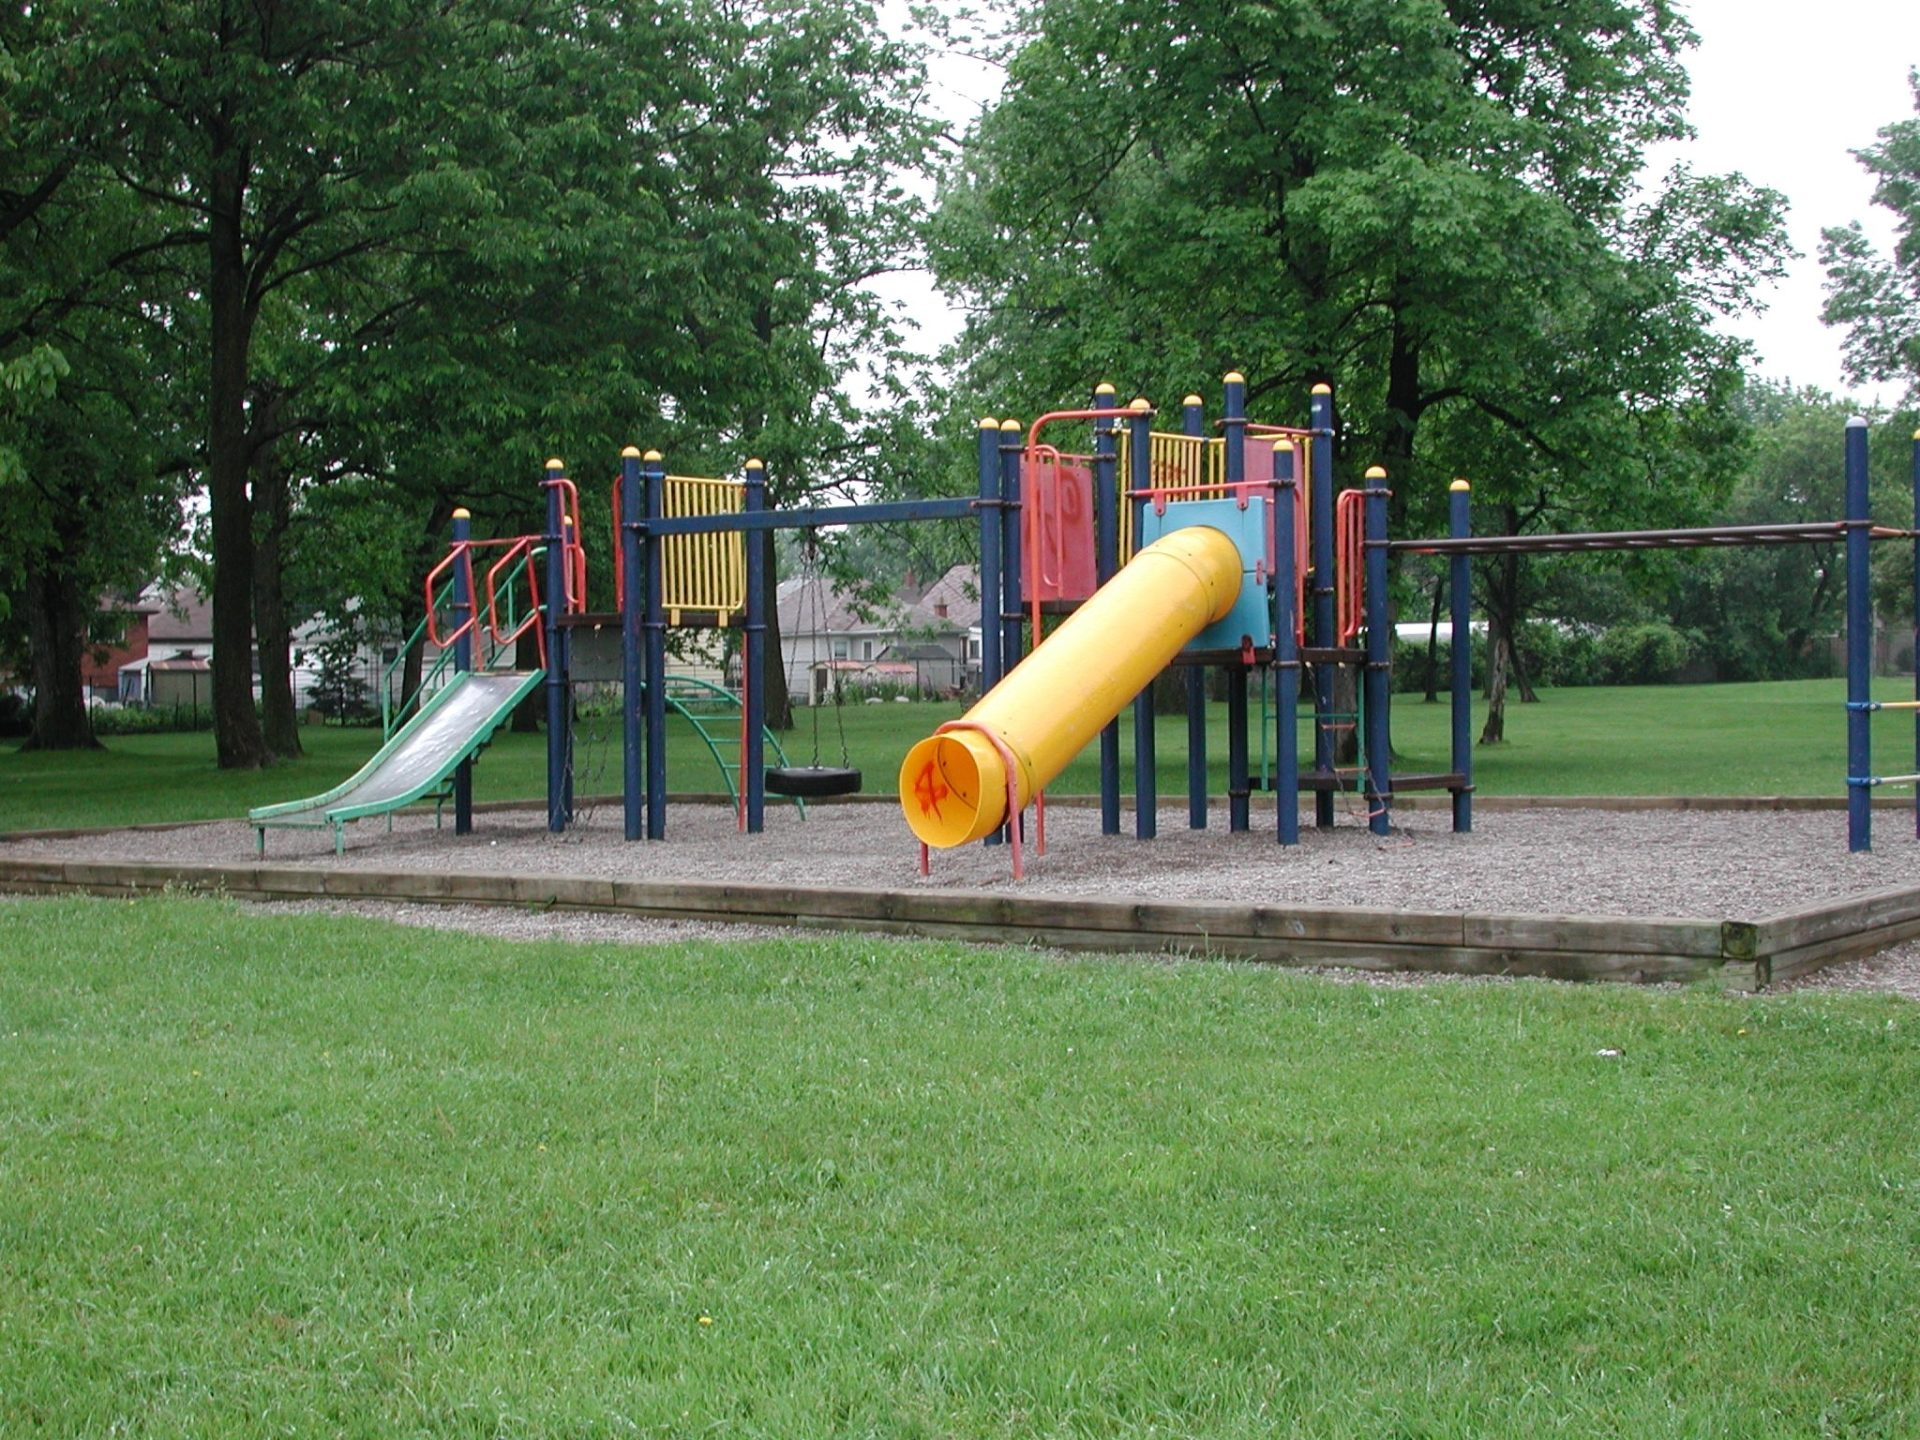 Sample image of the bruce park play equipment